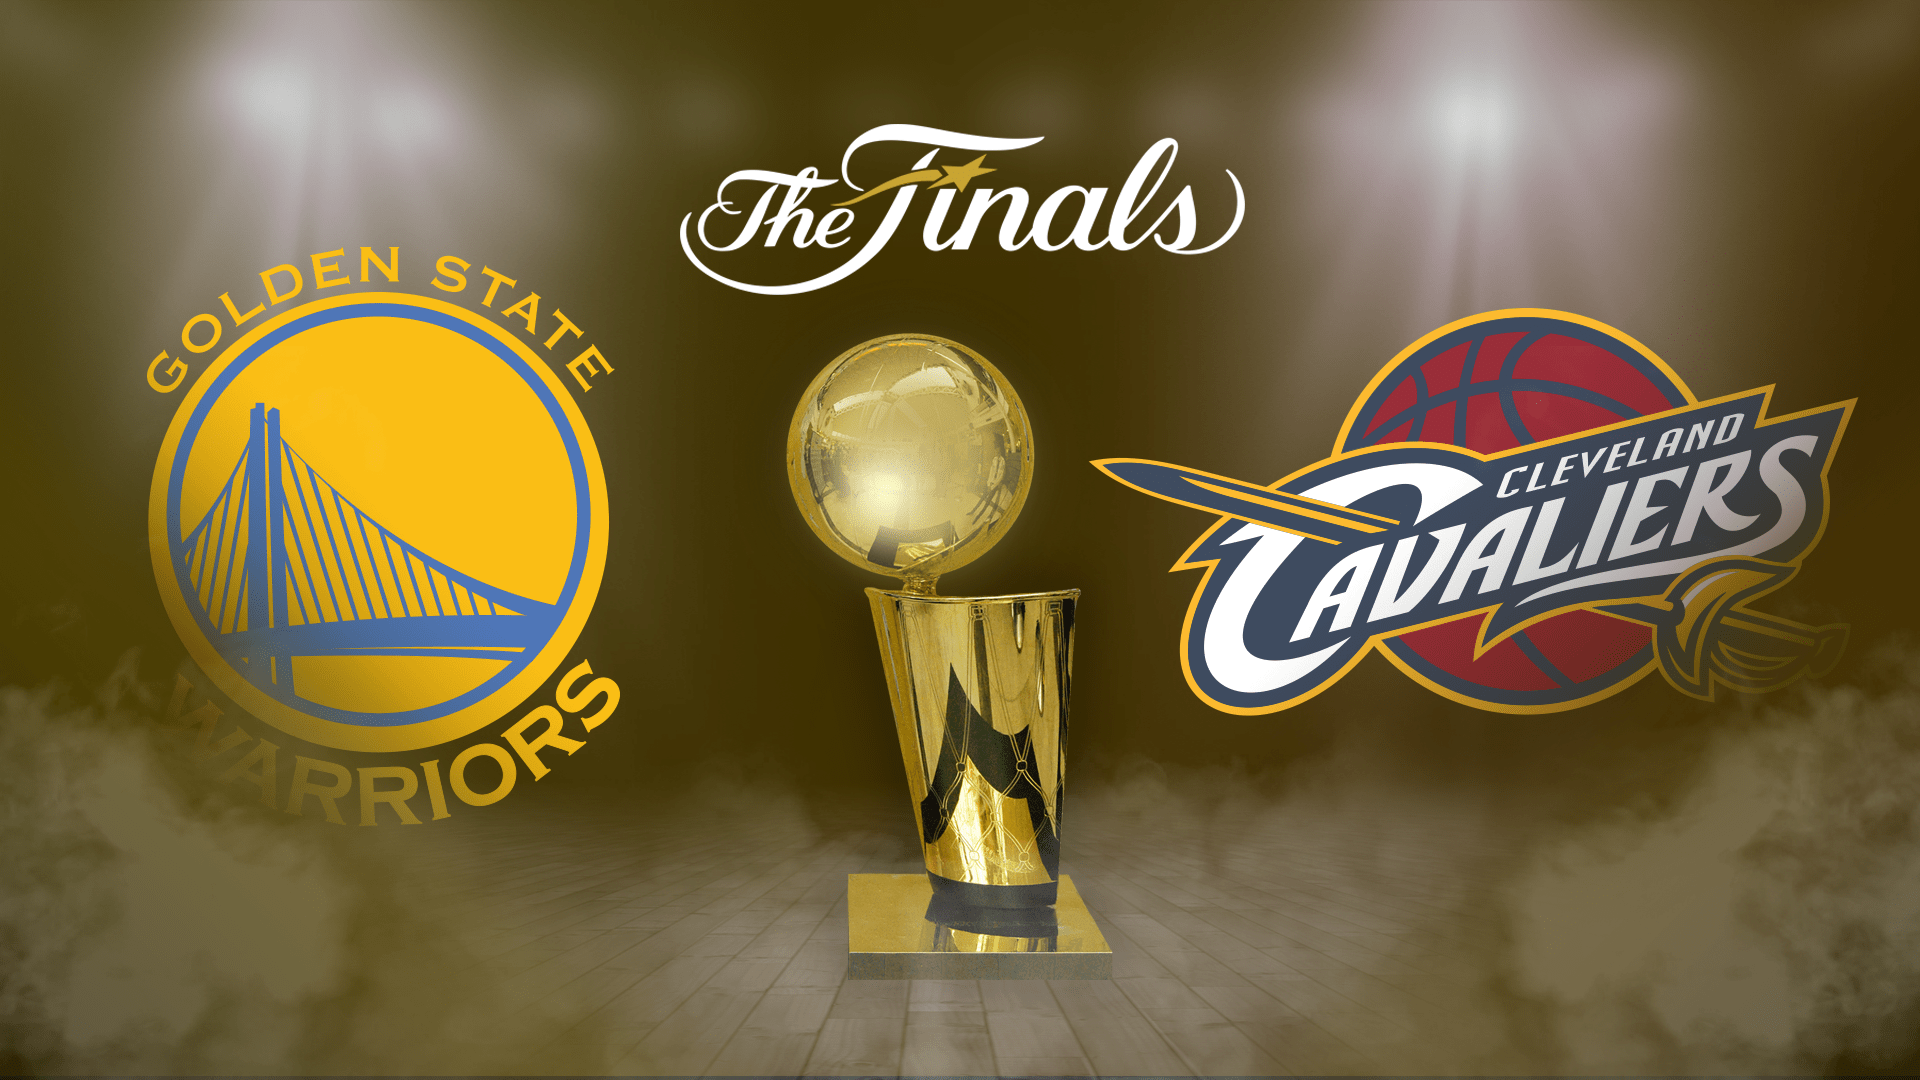 https://i2.wp.com/images.performgroup.com/di/library/sporting_news/75/30/nbafinals-ftr_12h542qoy90ho1d3dbx5mzgaa7.png